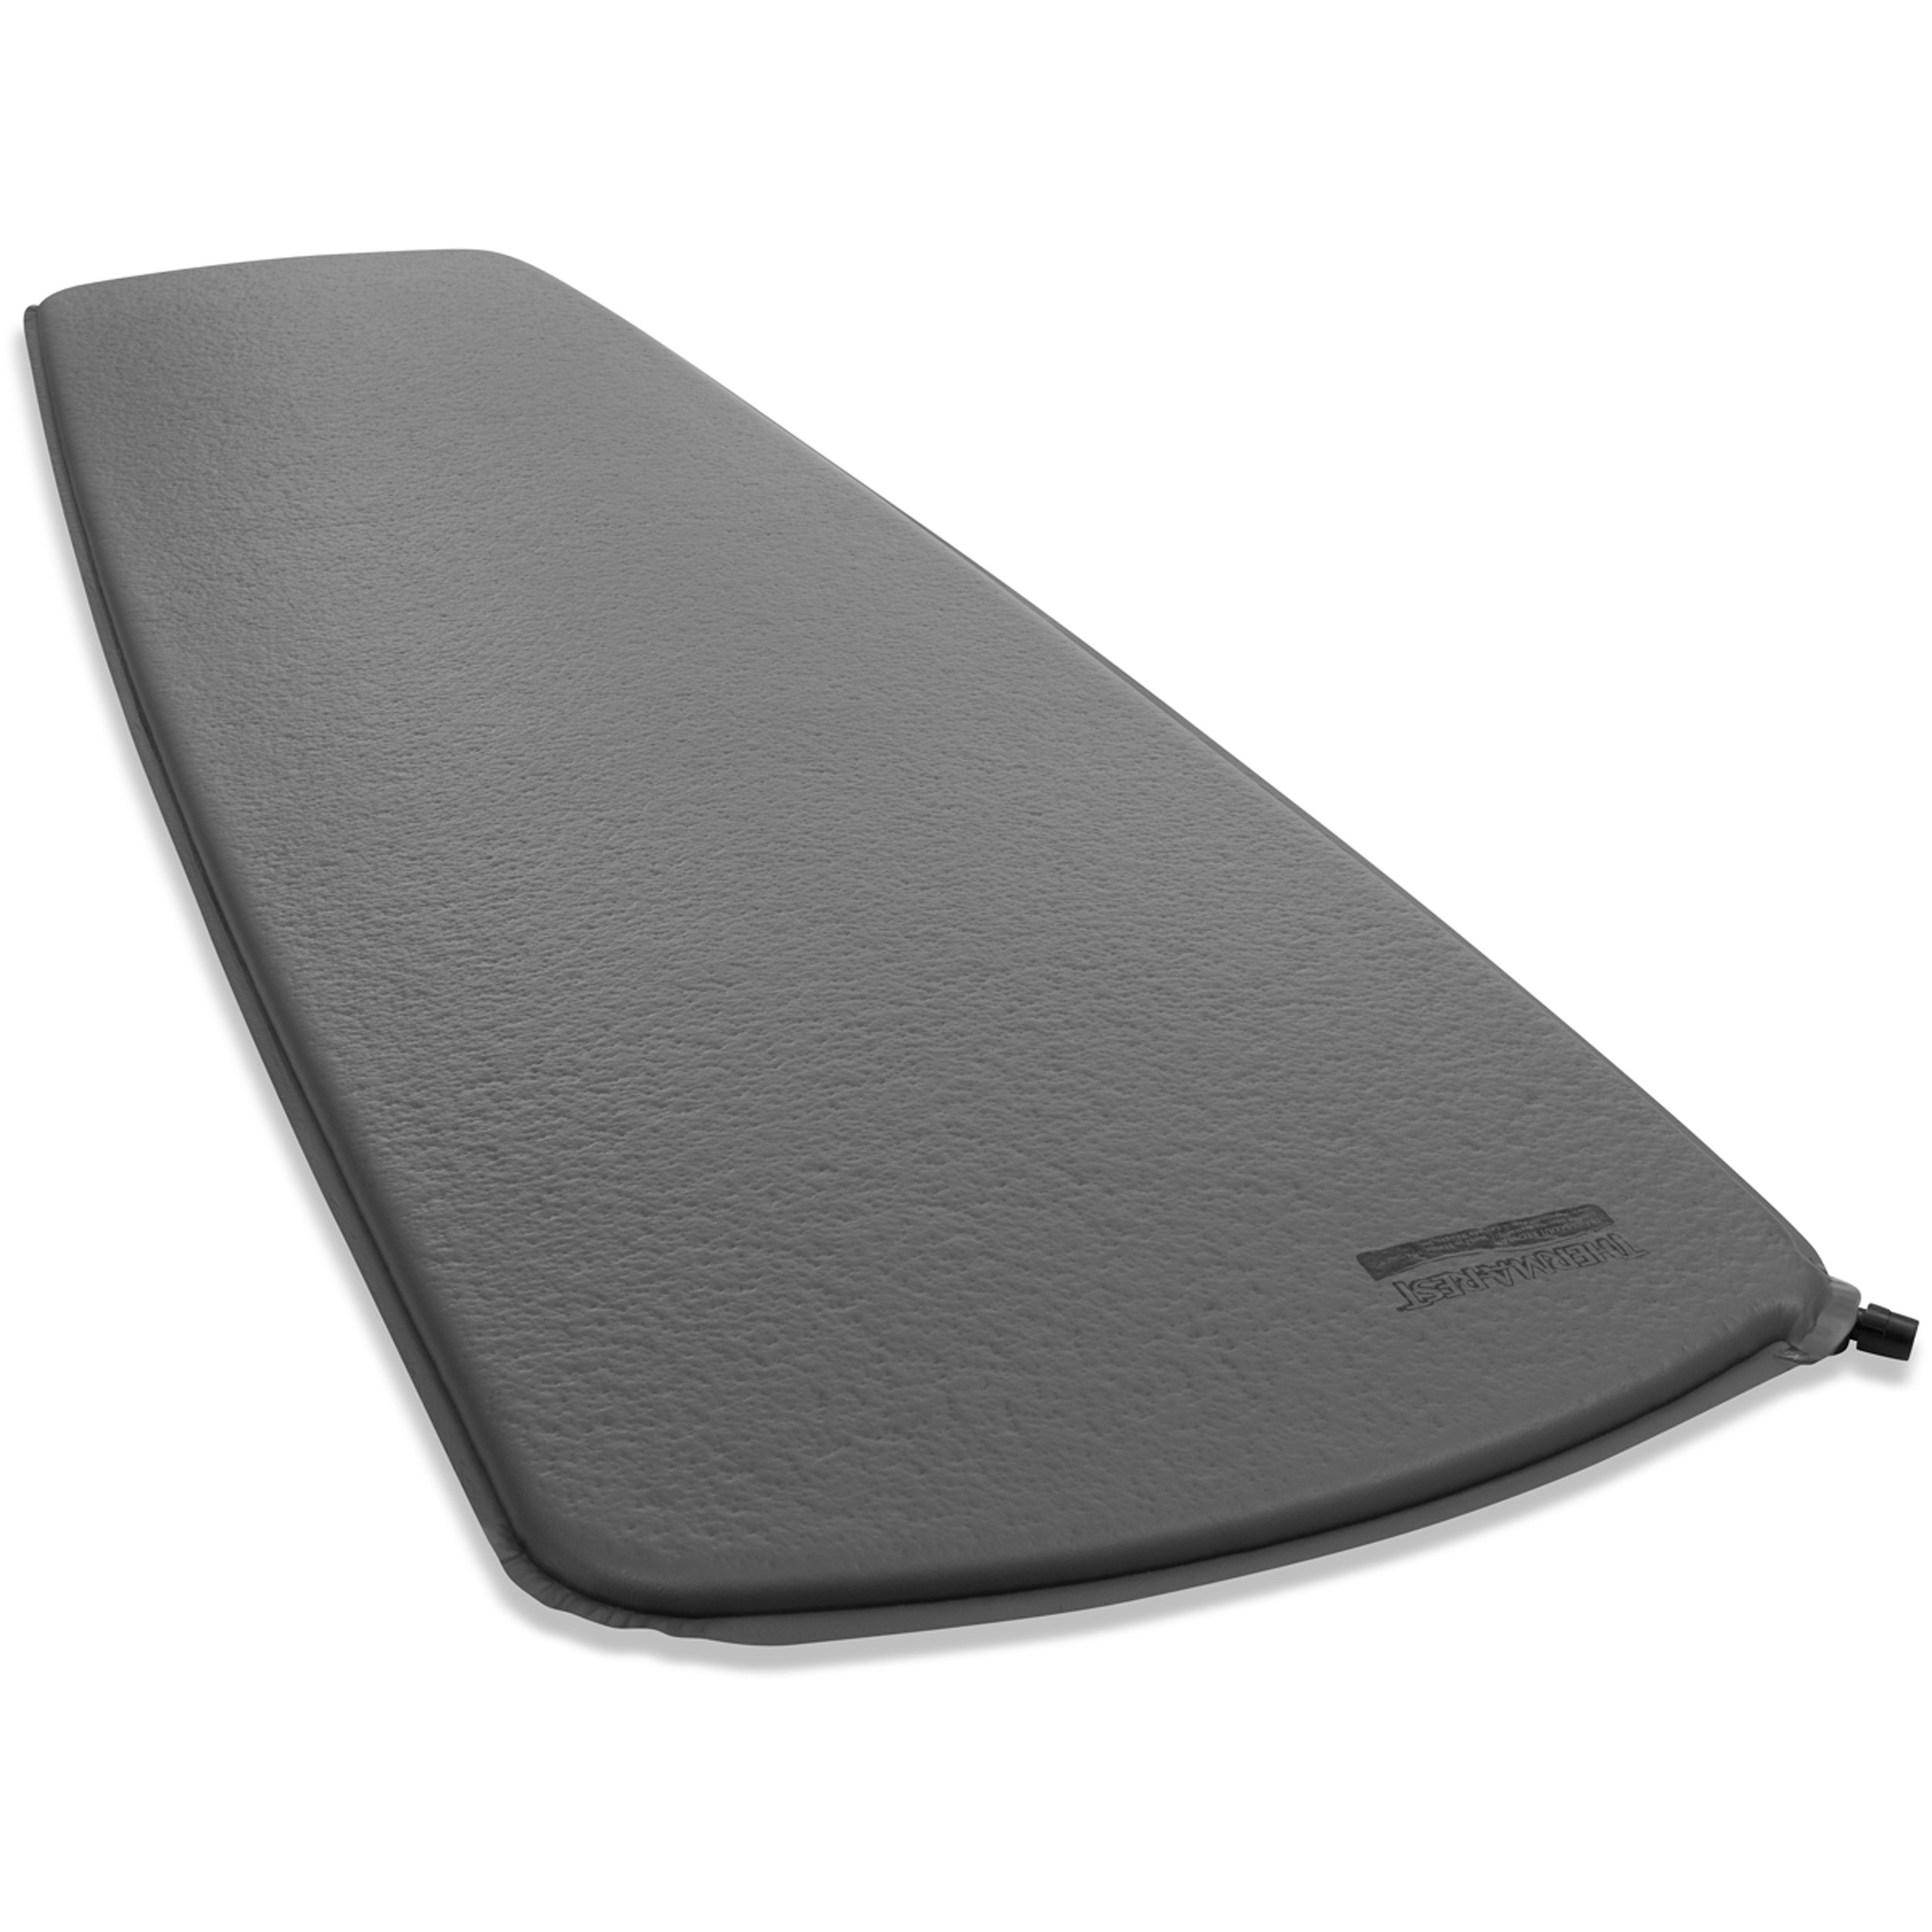 Therm-a-Rest Trail Scout Self-Inflating Foam Camping Mat, Small - 20 x 47 Inches by Therm-a-Rest